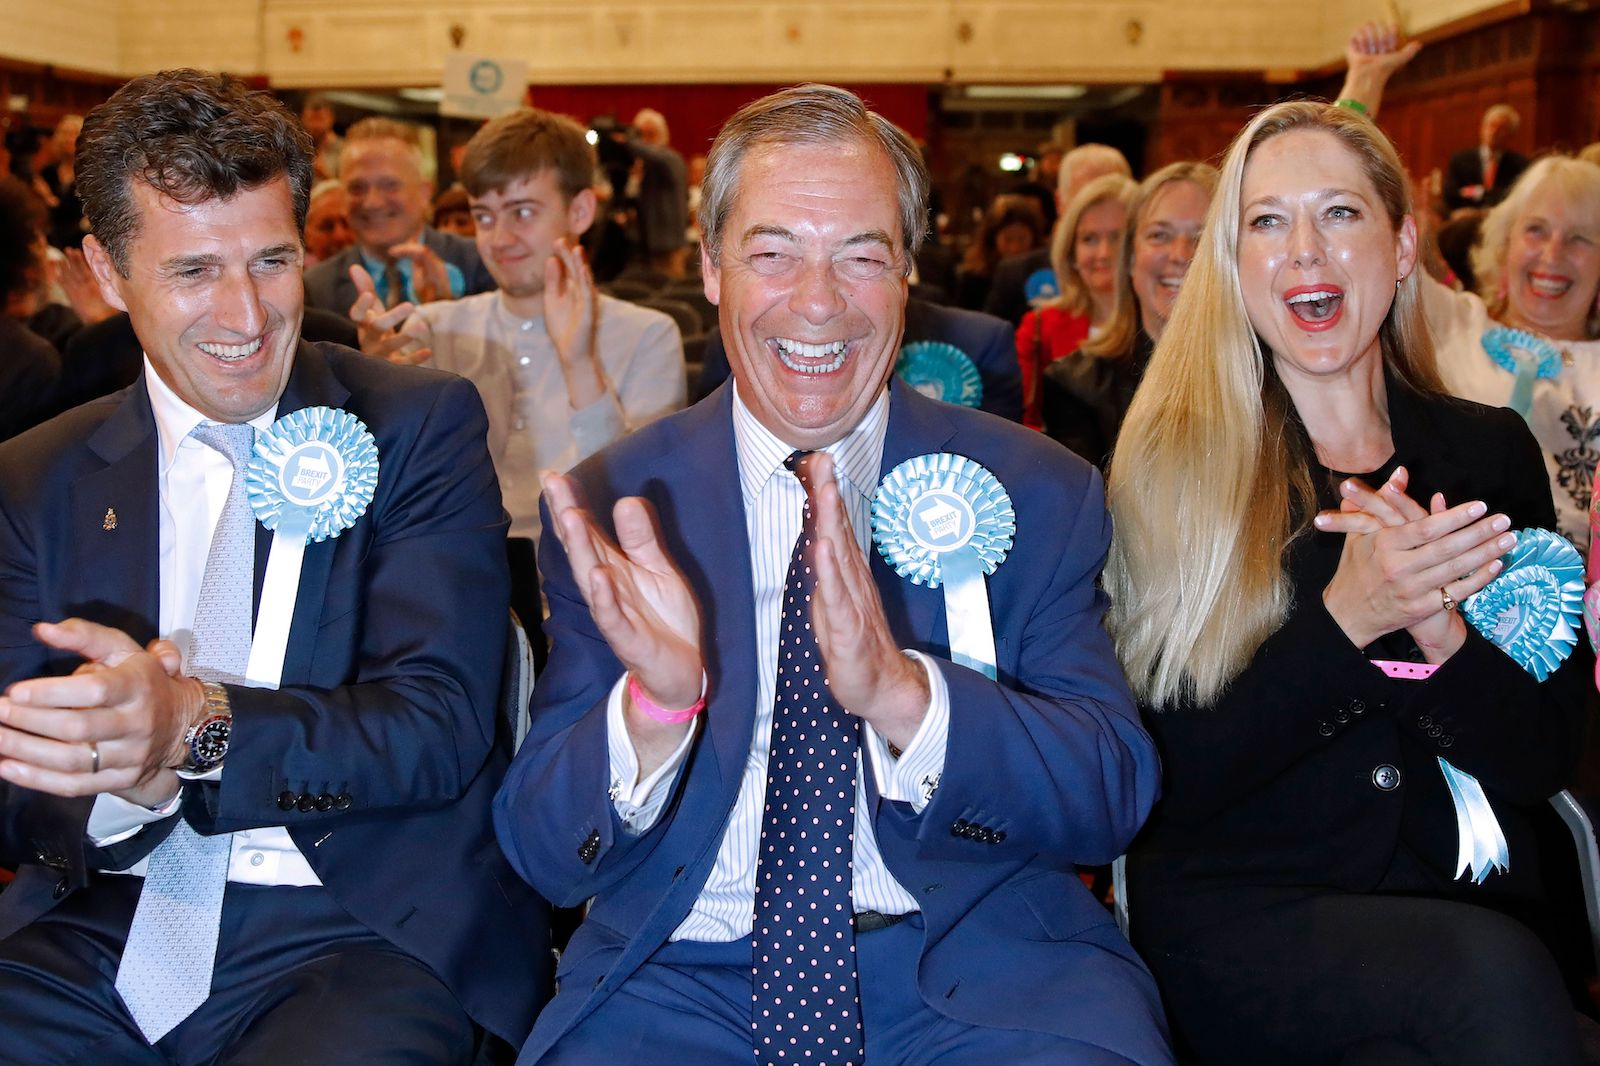 Nigel Farage, leader of the Brexit Party, reacts after being elected as a Member of the European Parliament on Sunday, May 27, 2019.